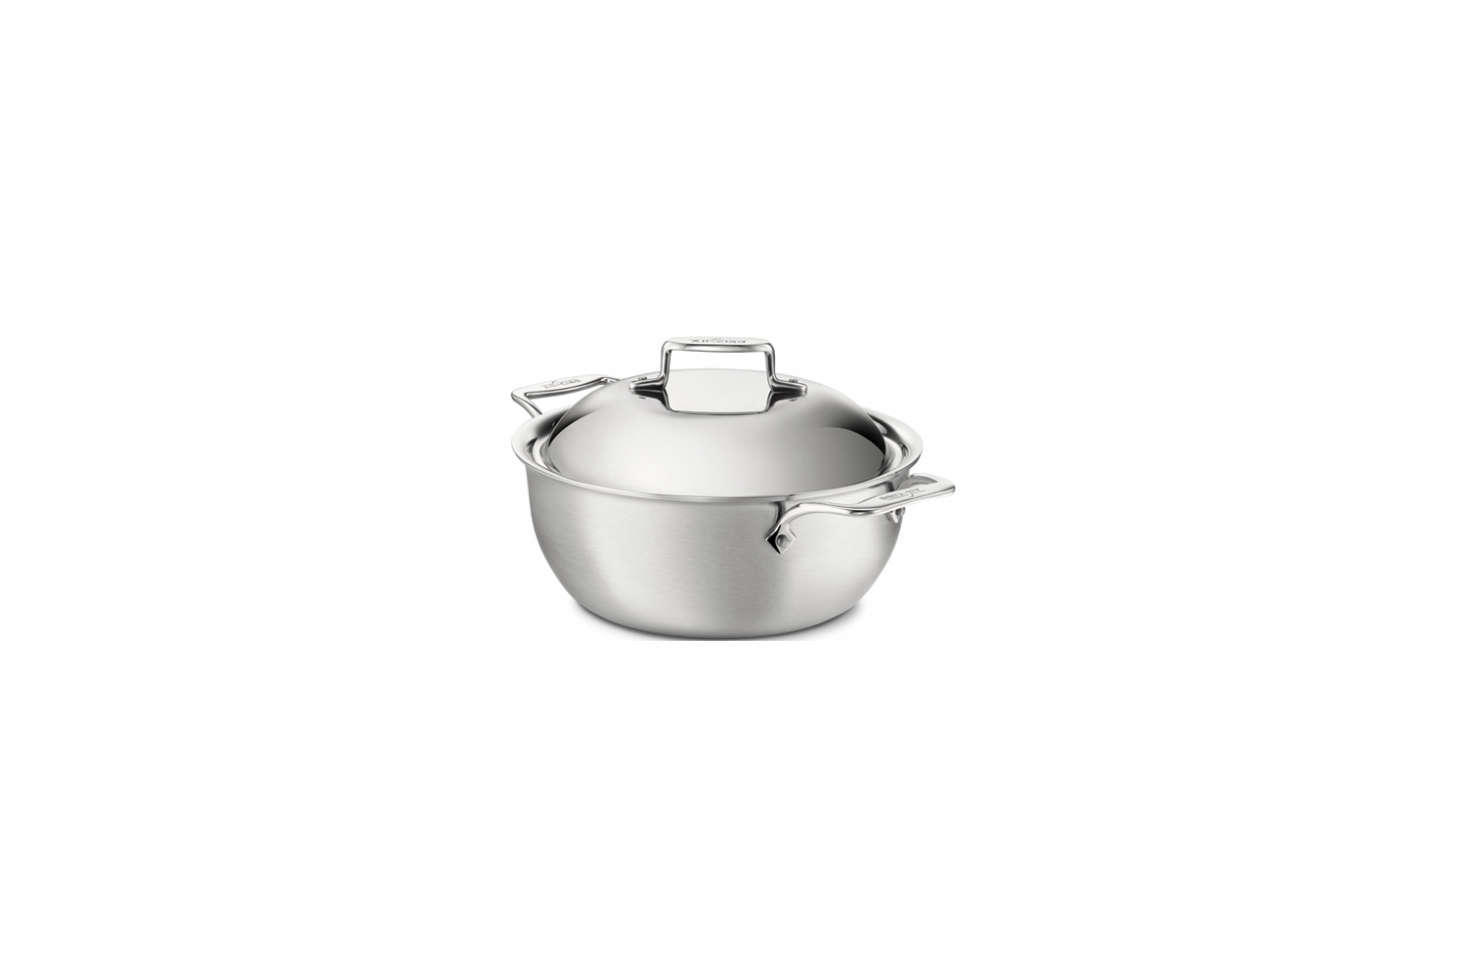 The All-Clad Stainless Steel Dutch Oven with a Domed Lid is $334.95 on Amazon.